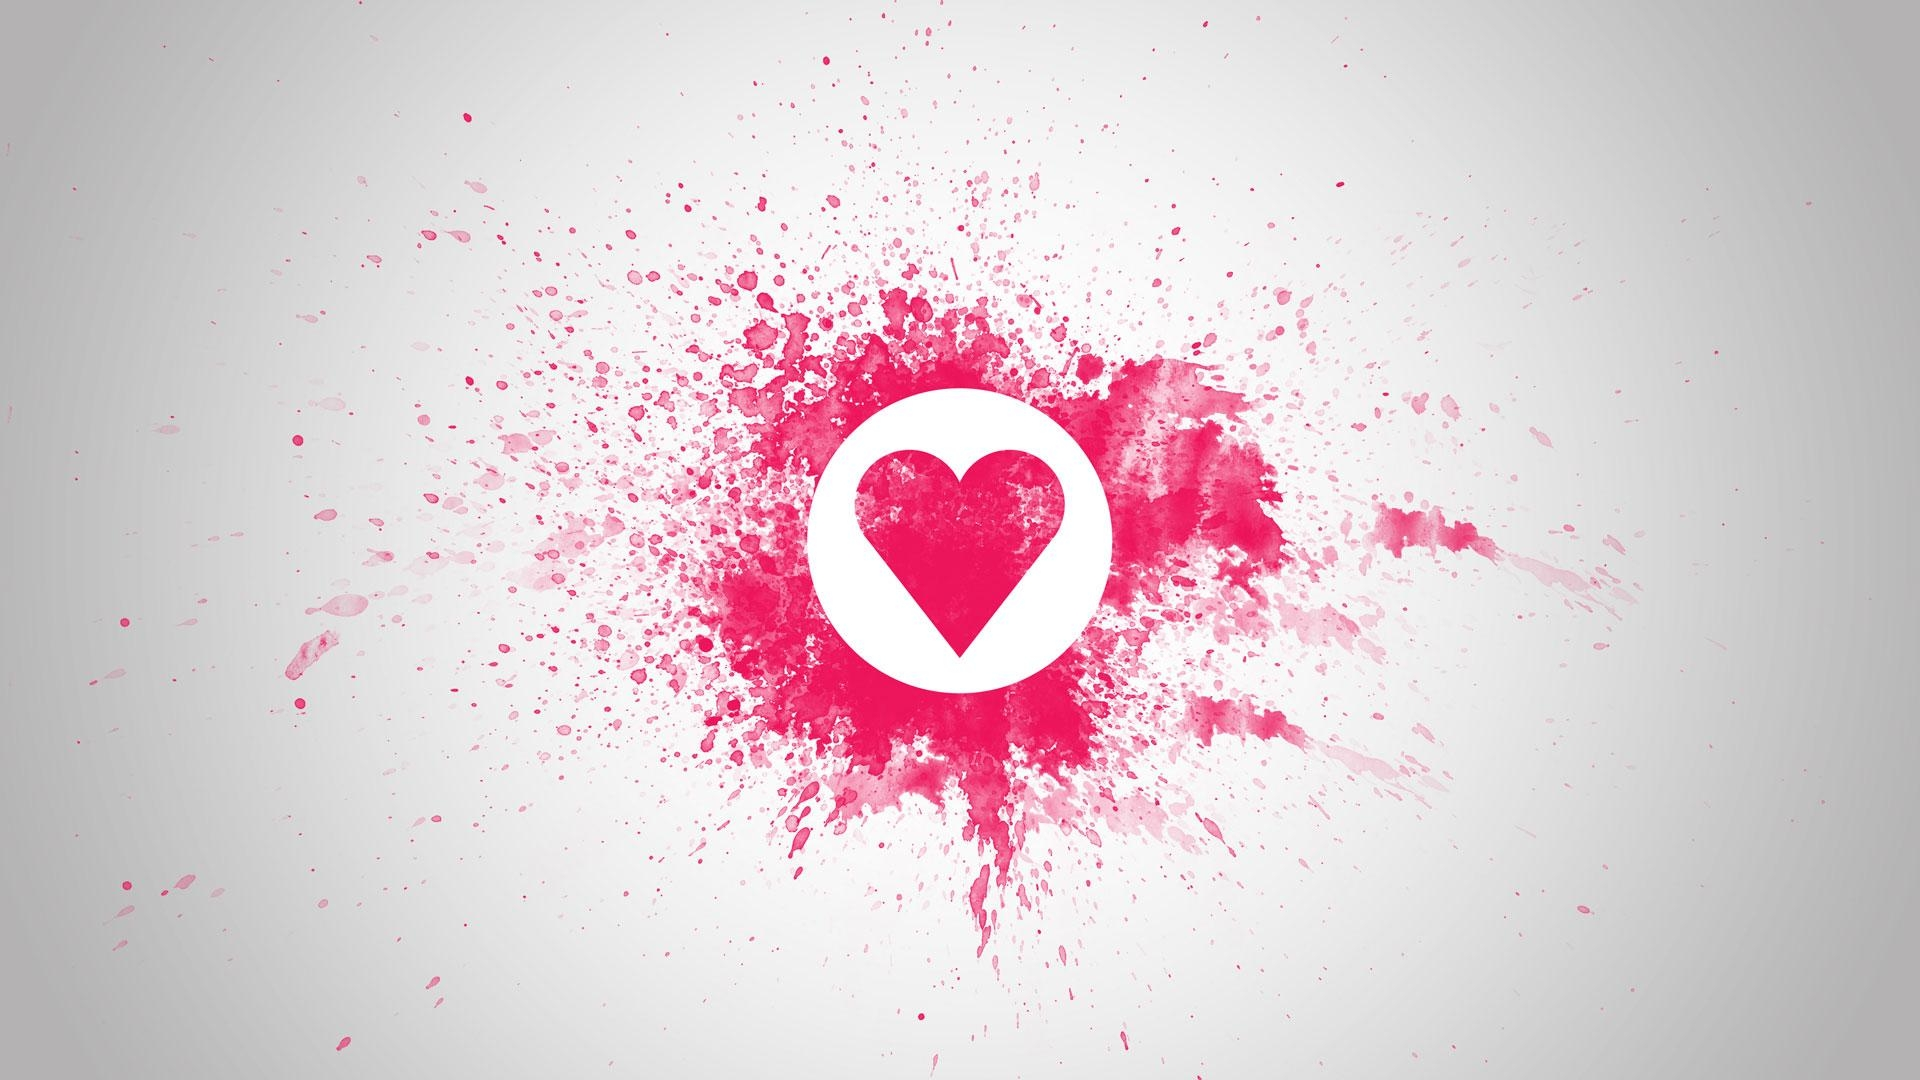 Love Wall Art Pink Red Desktop Background Wallpaper (1080P) – Hd Image Inside Love Wall Art (View 16 of 20)